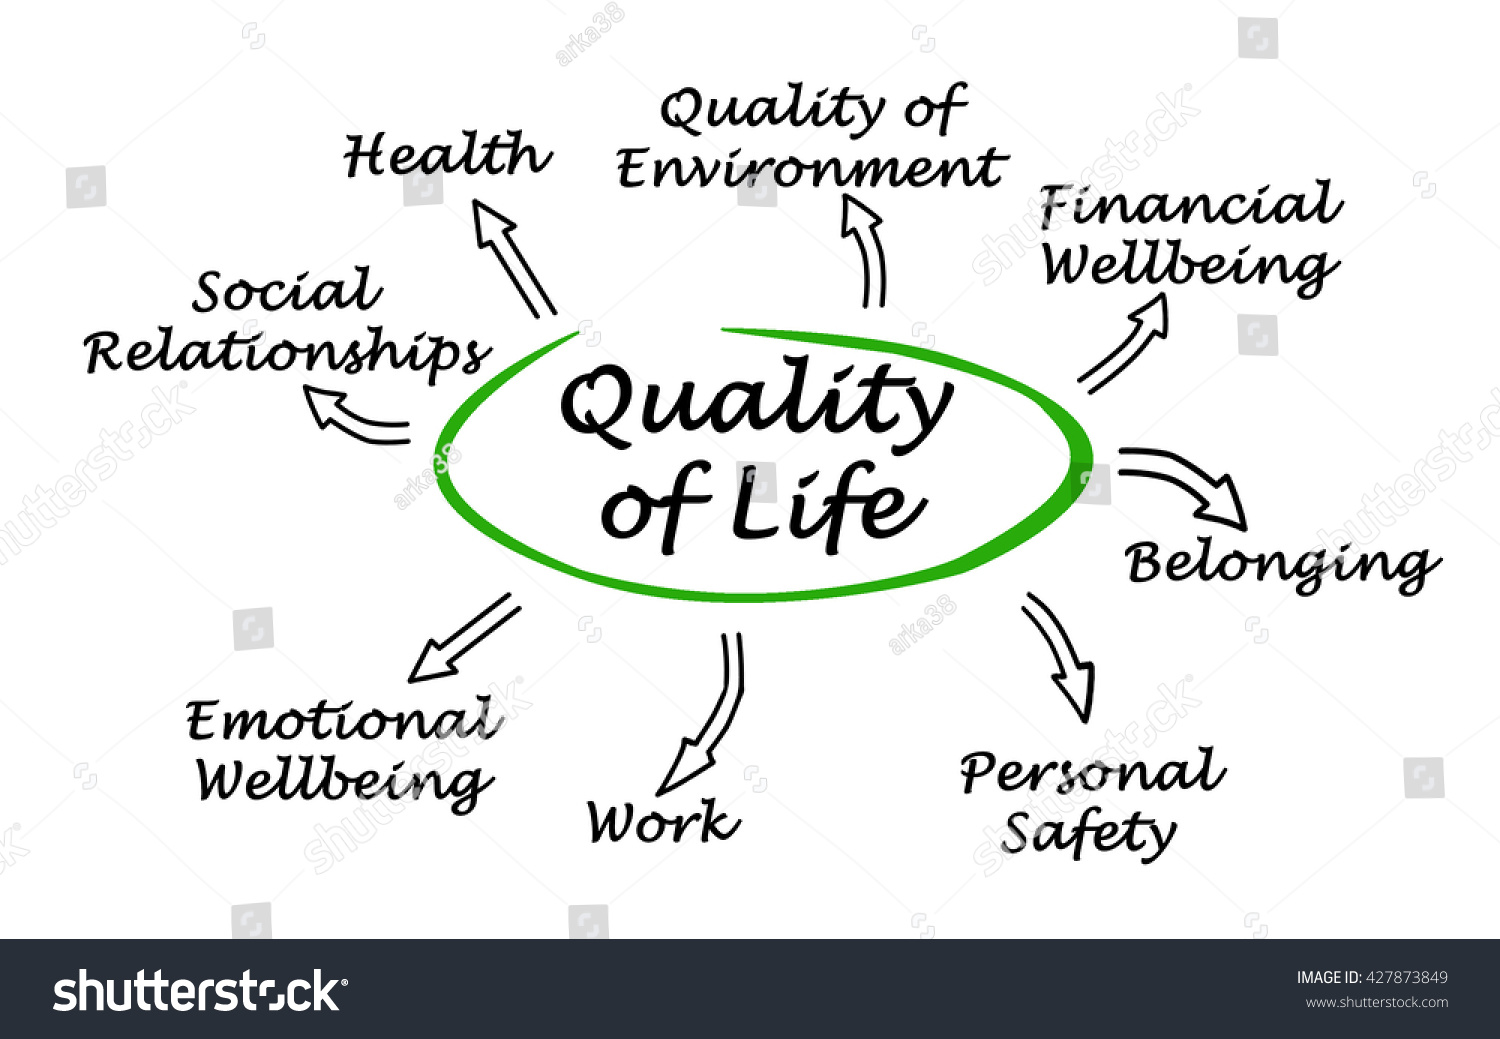 hight resolution of diagram of quality of life